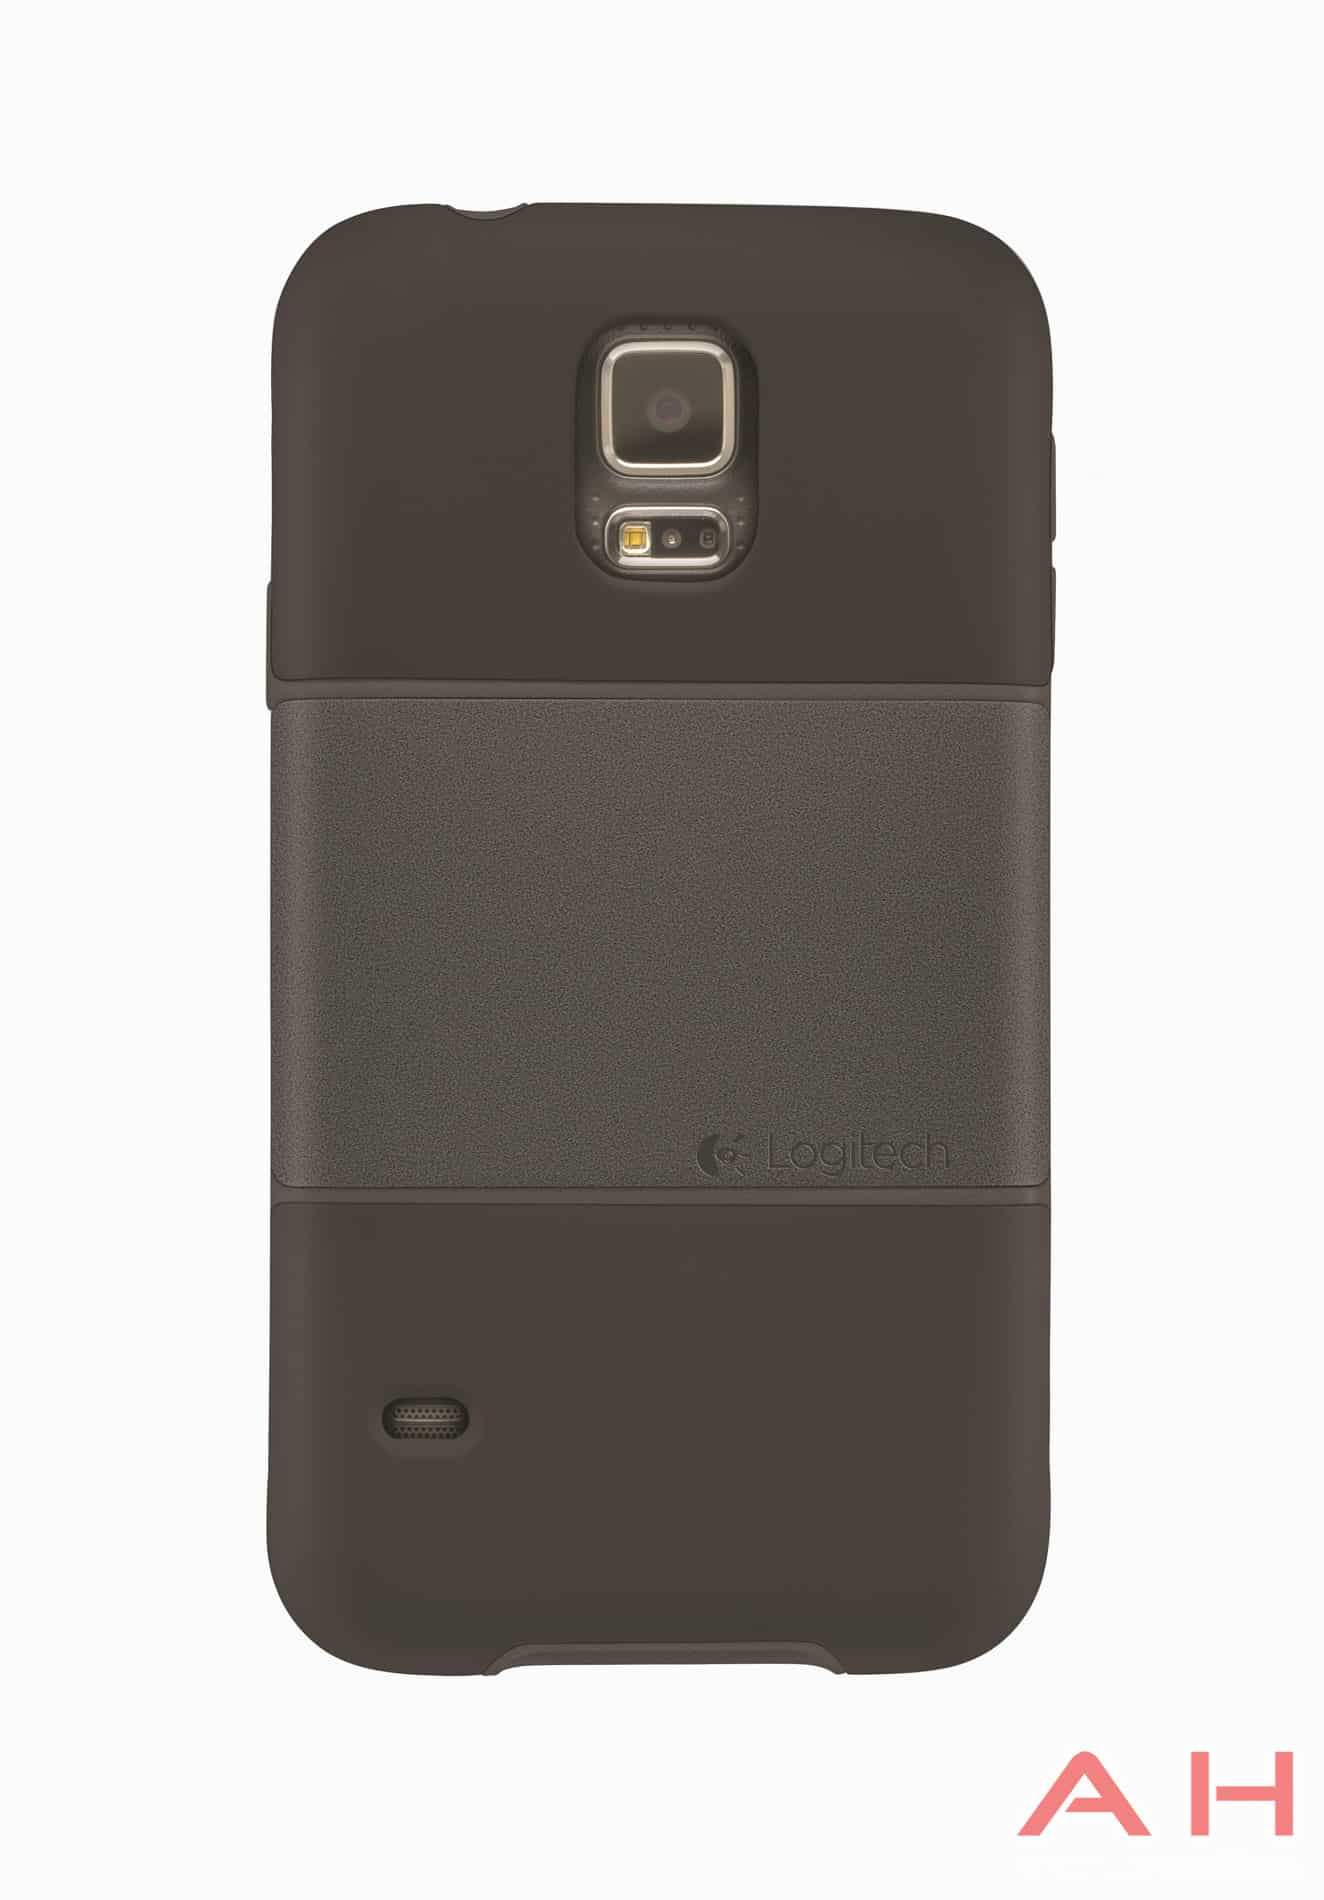 Logitech-Protection-Case-AH-4